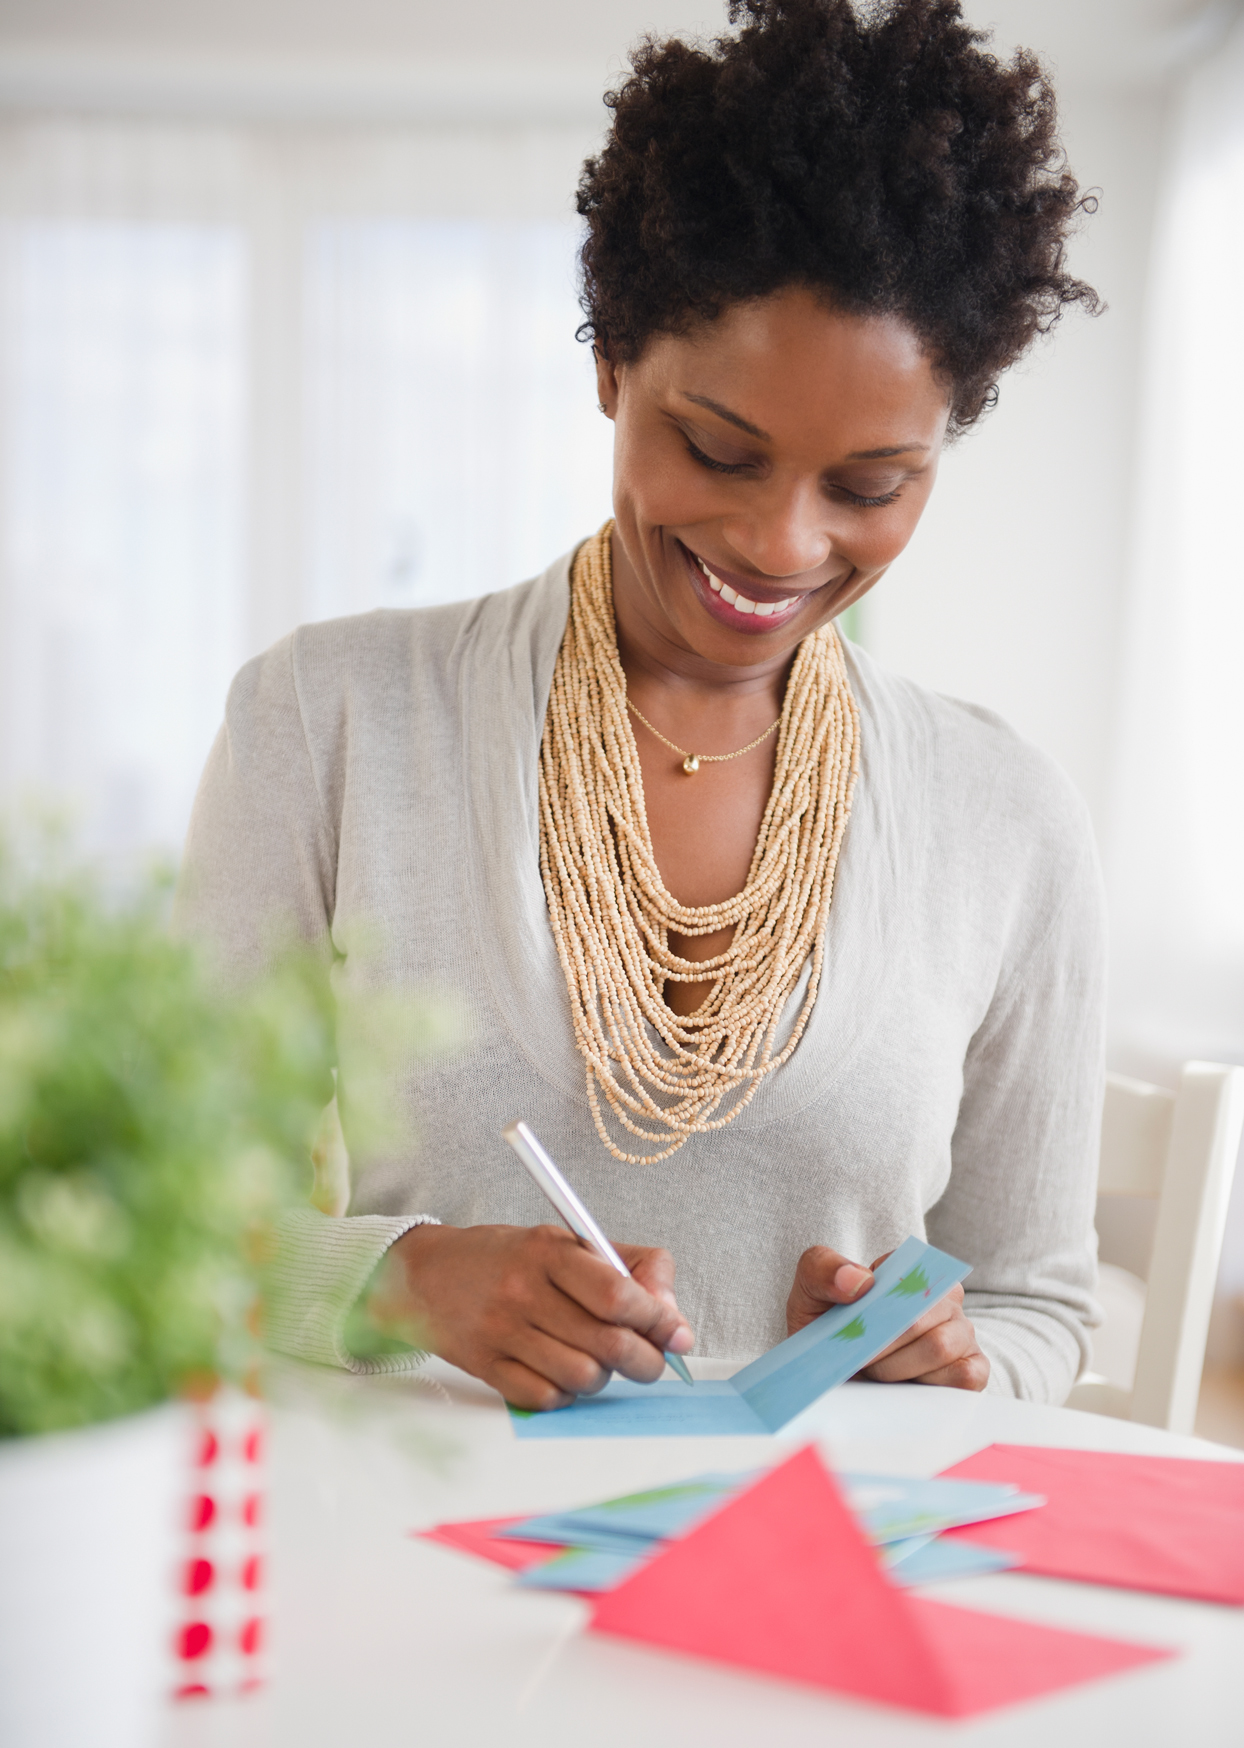 Should You Send Your Holiday Party Hostess a Thank-You Note?